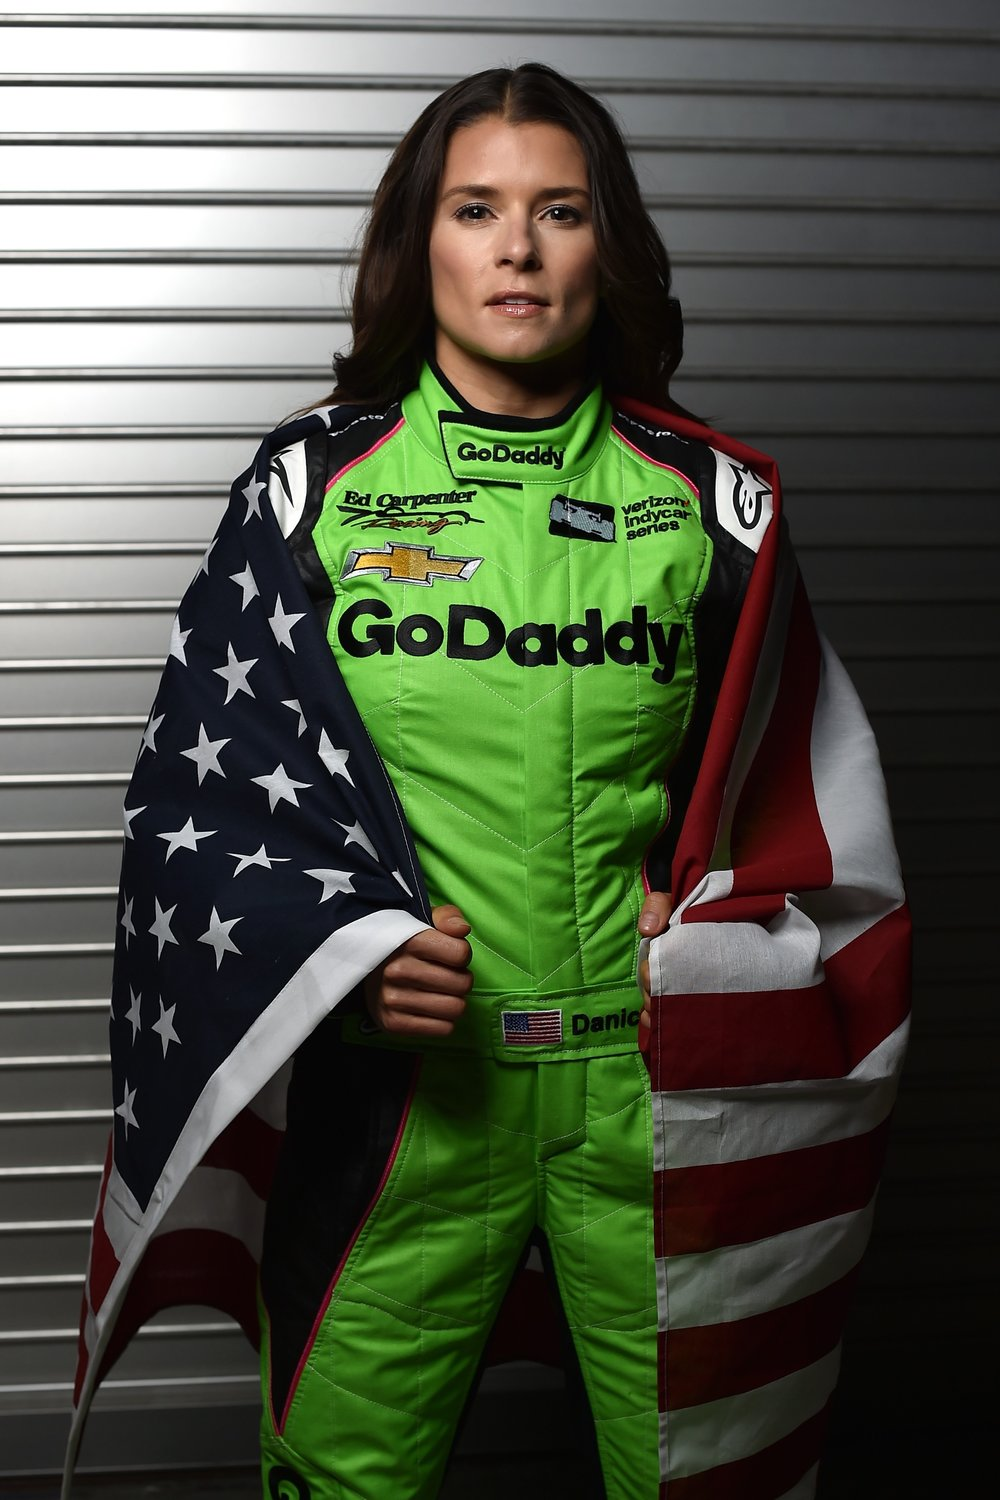 Danica Patrick returns to the Indianapolis 500